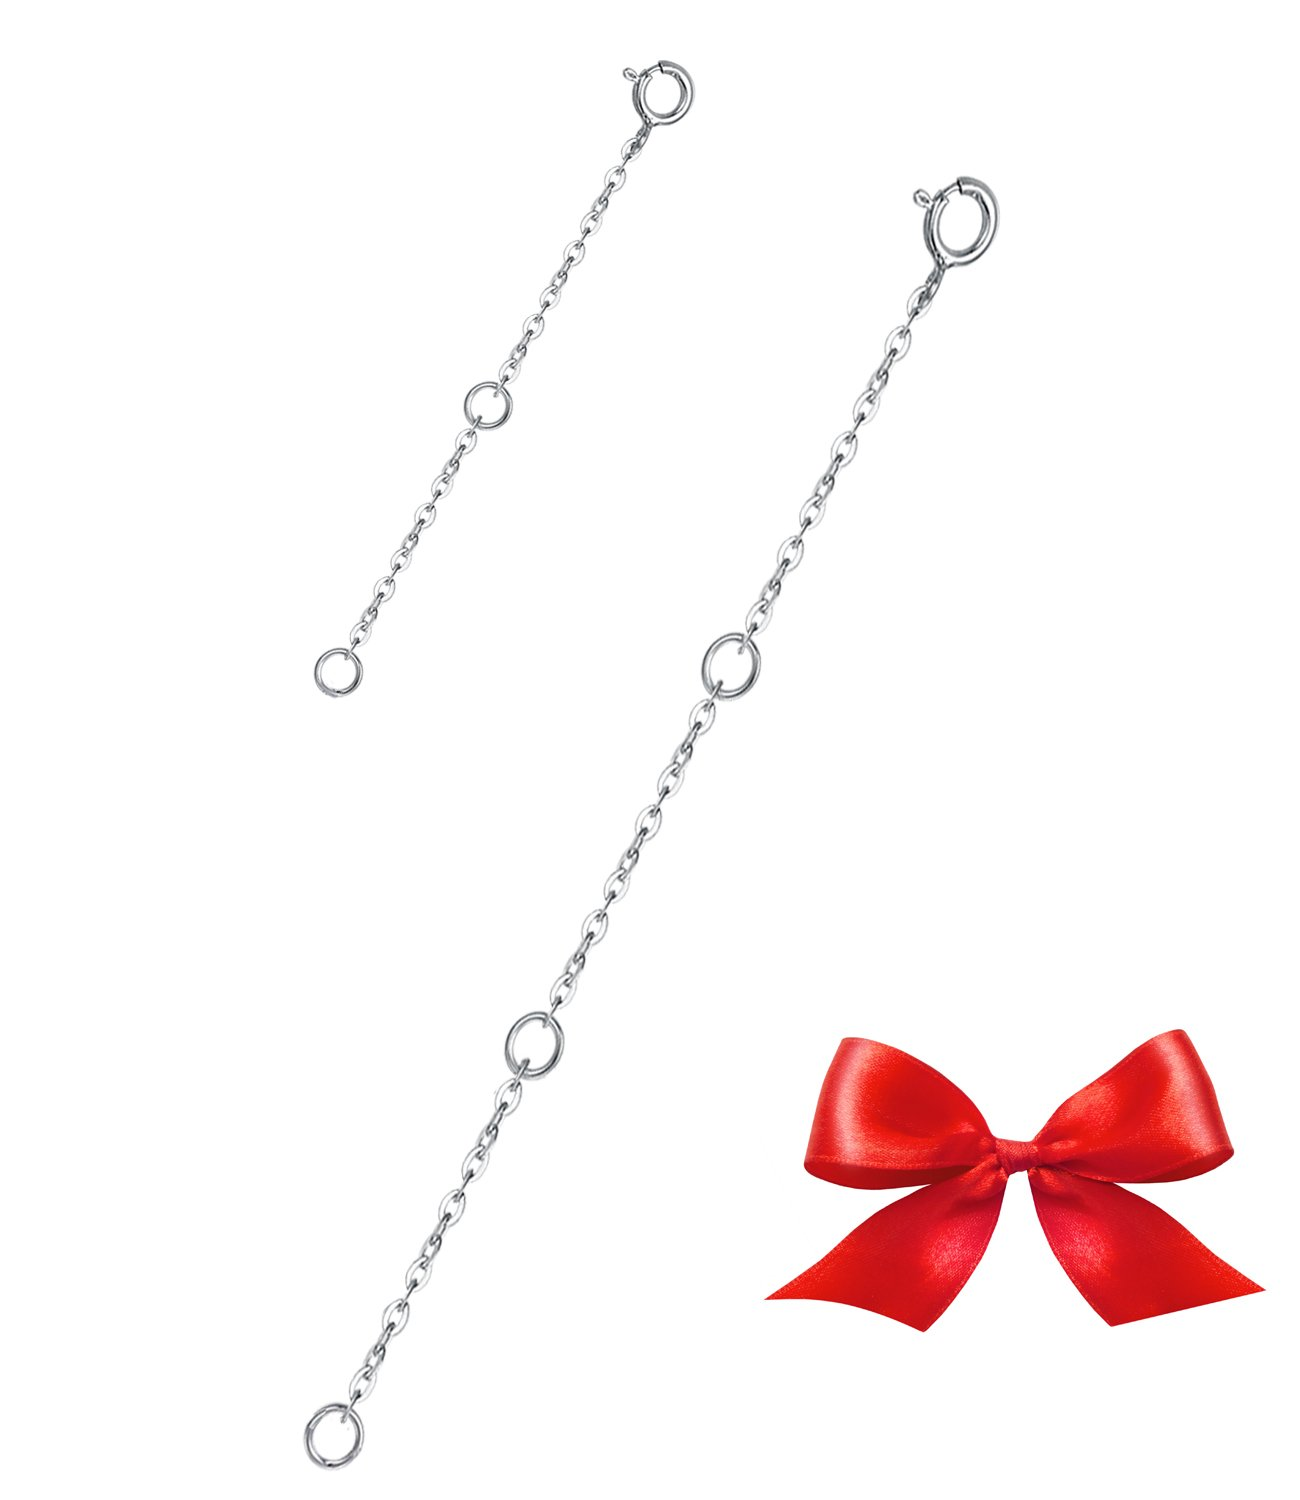 Elda&Co Sterling Silver Necklace Bracelet Extender Chain Set include 2pcs Different Length:4 and 2 CHT002-4